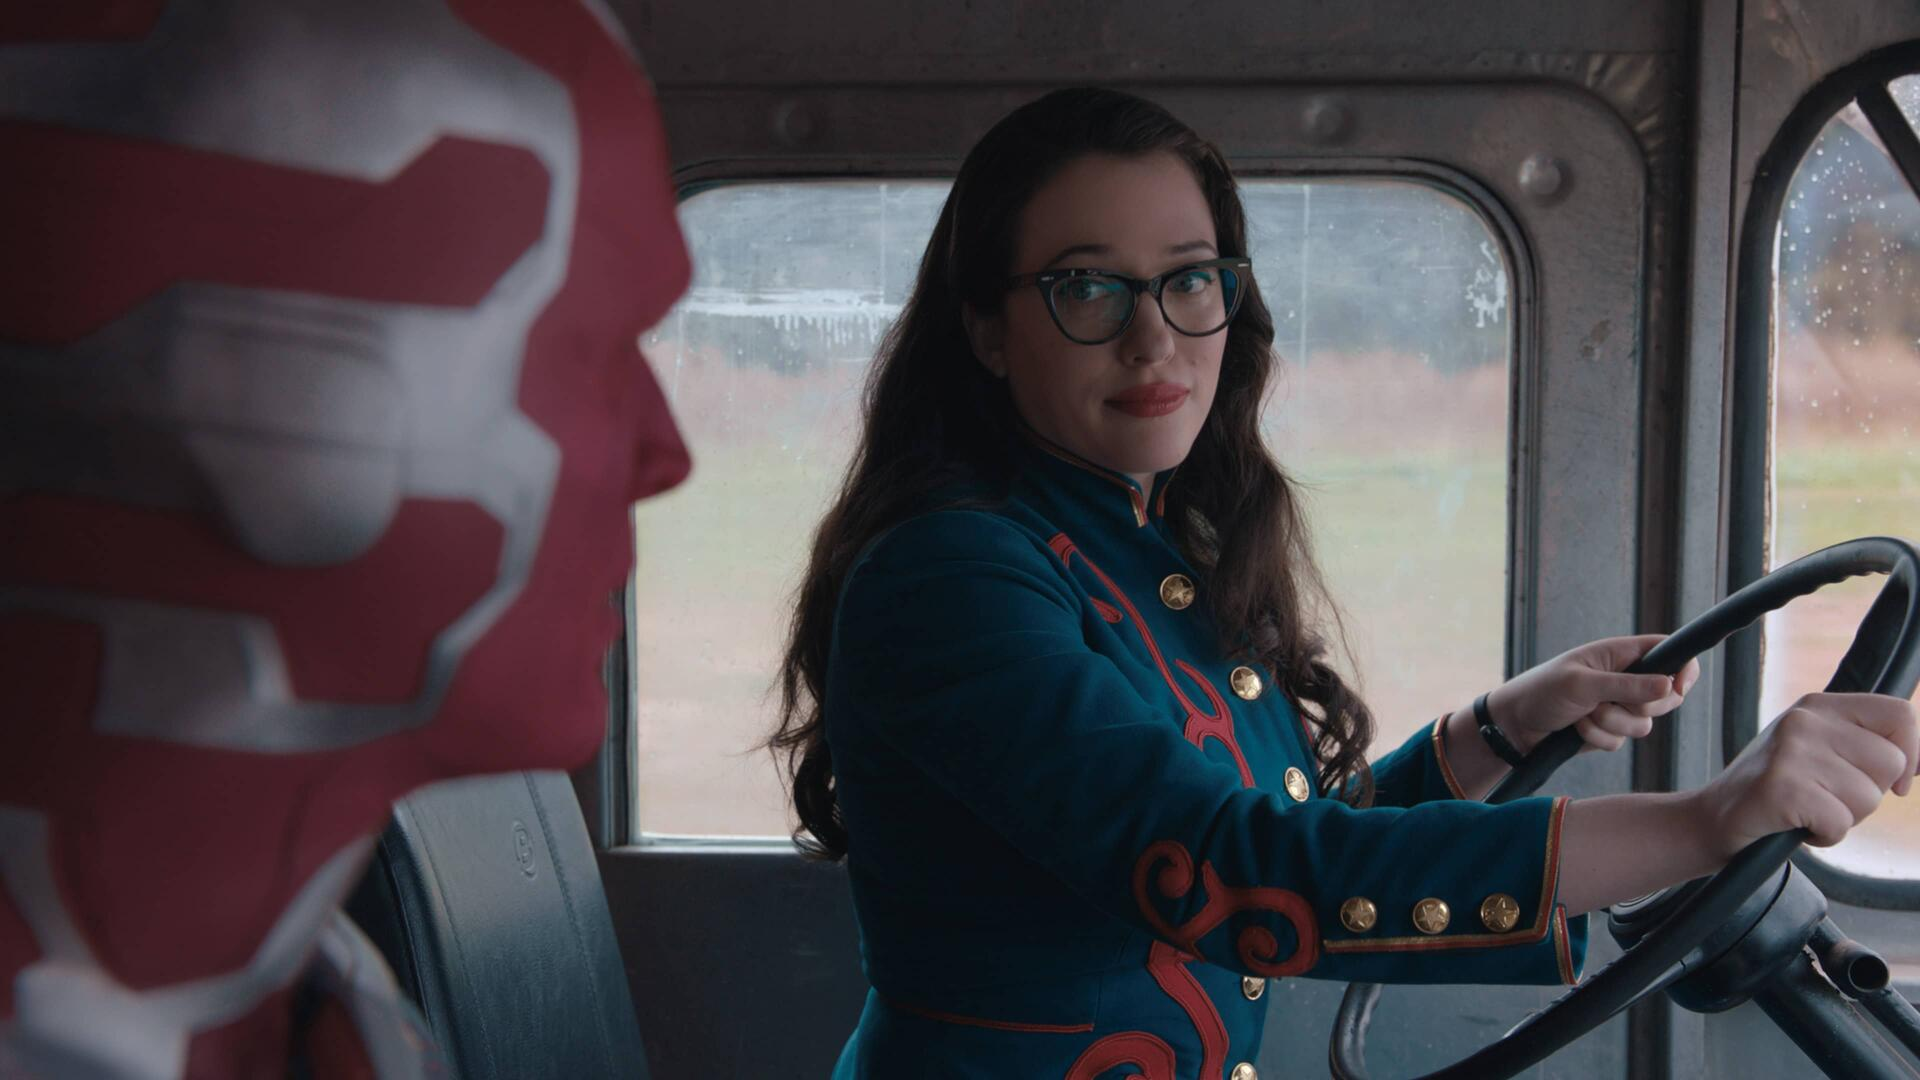 Kat Dennings as Dr. Darcy Lewis driving a funnel cake truck